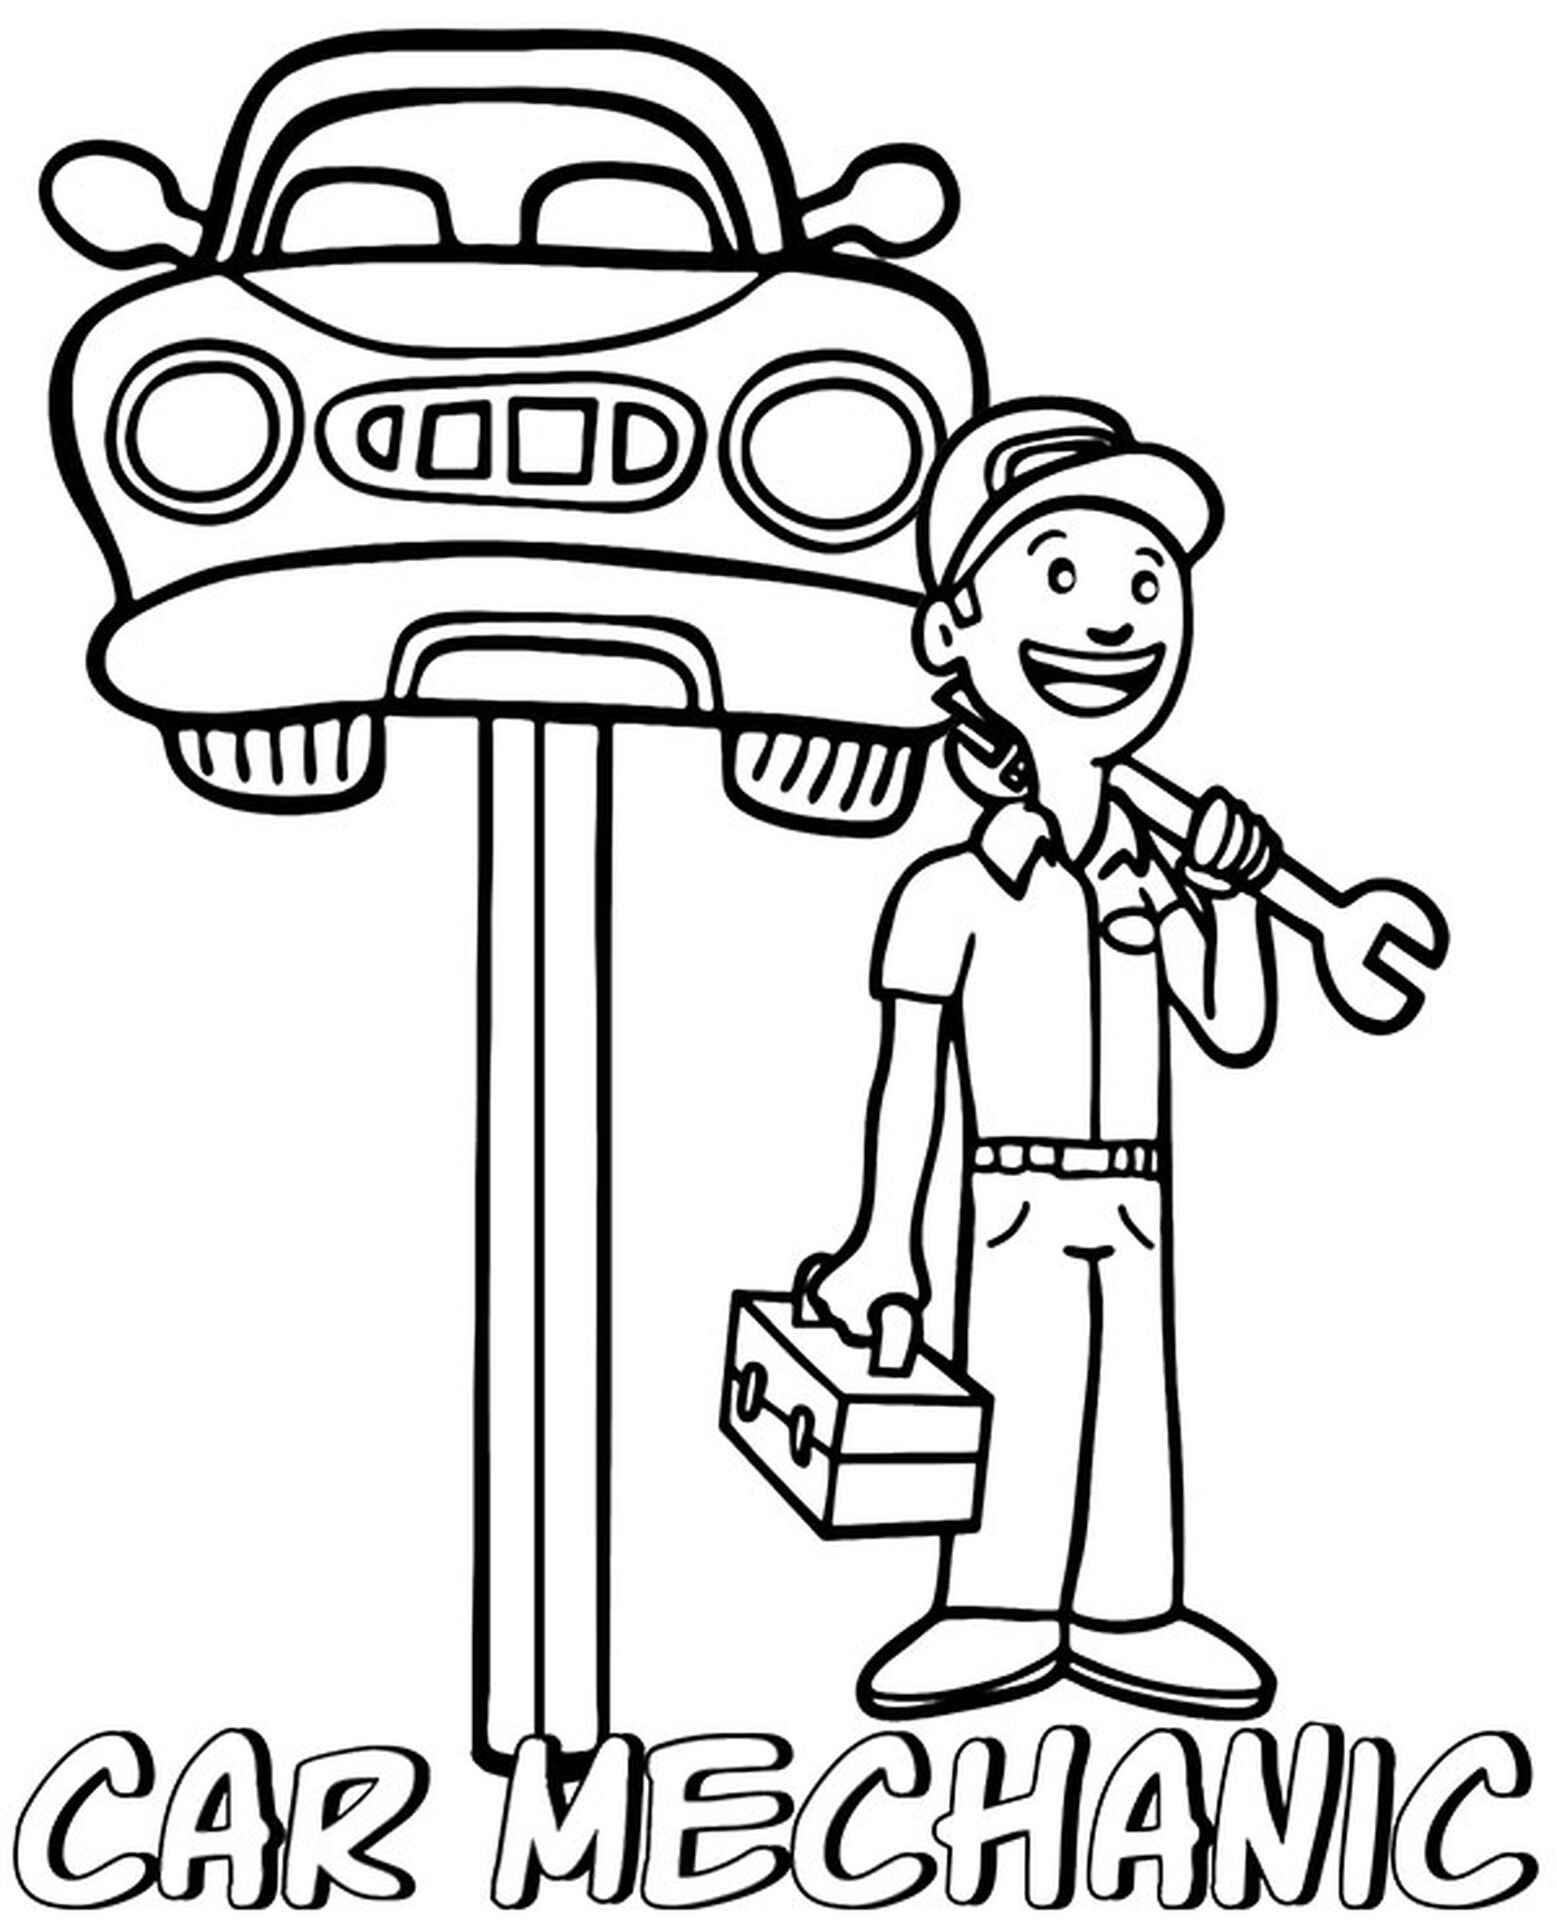 Car Mechanic Coloring Page